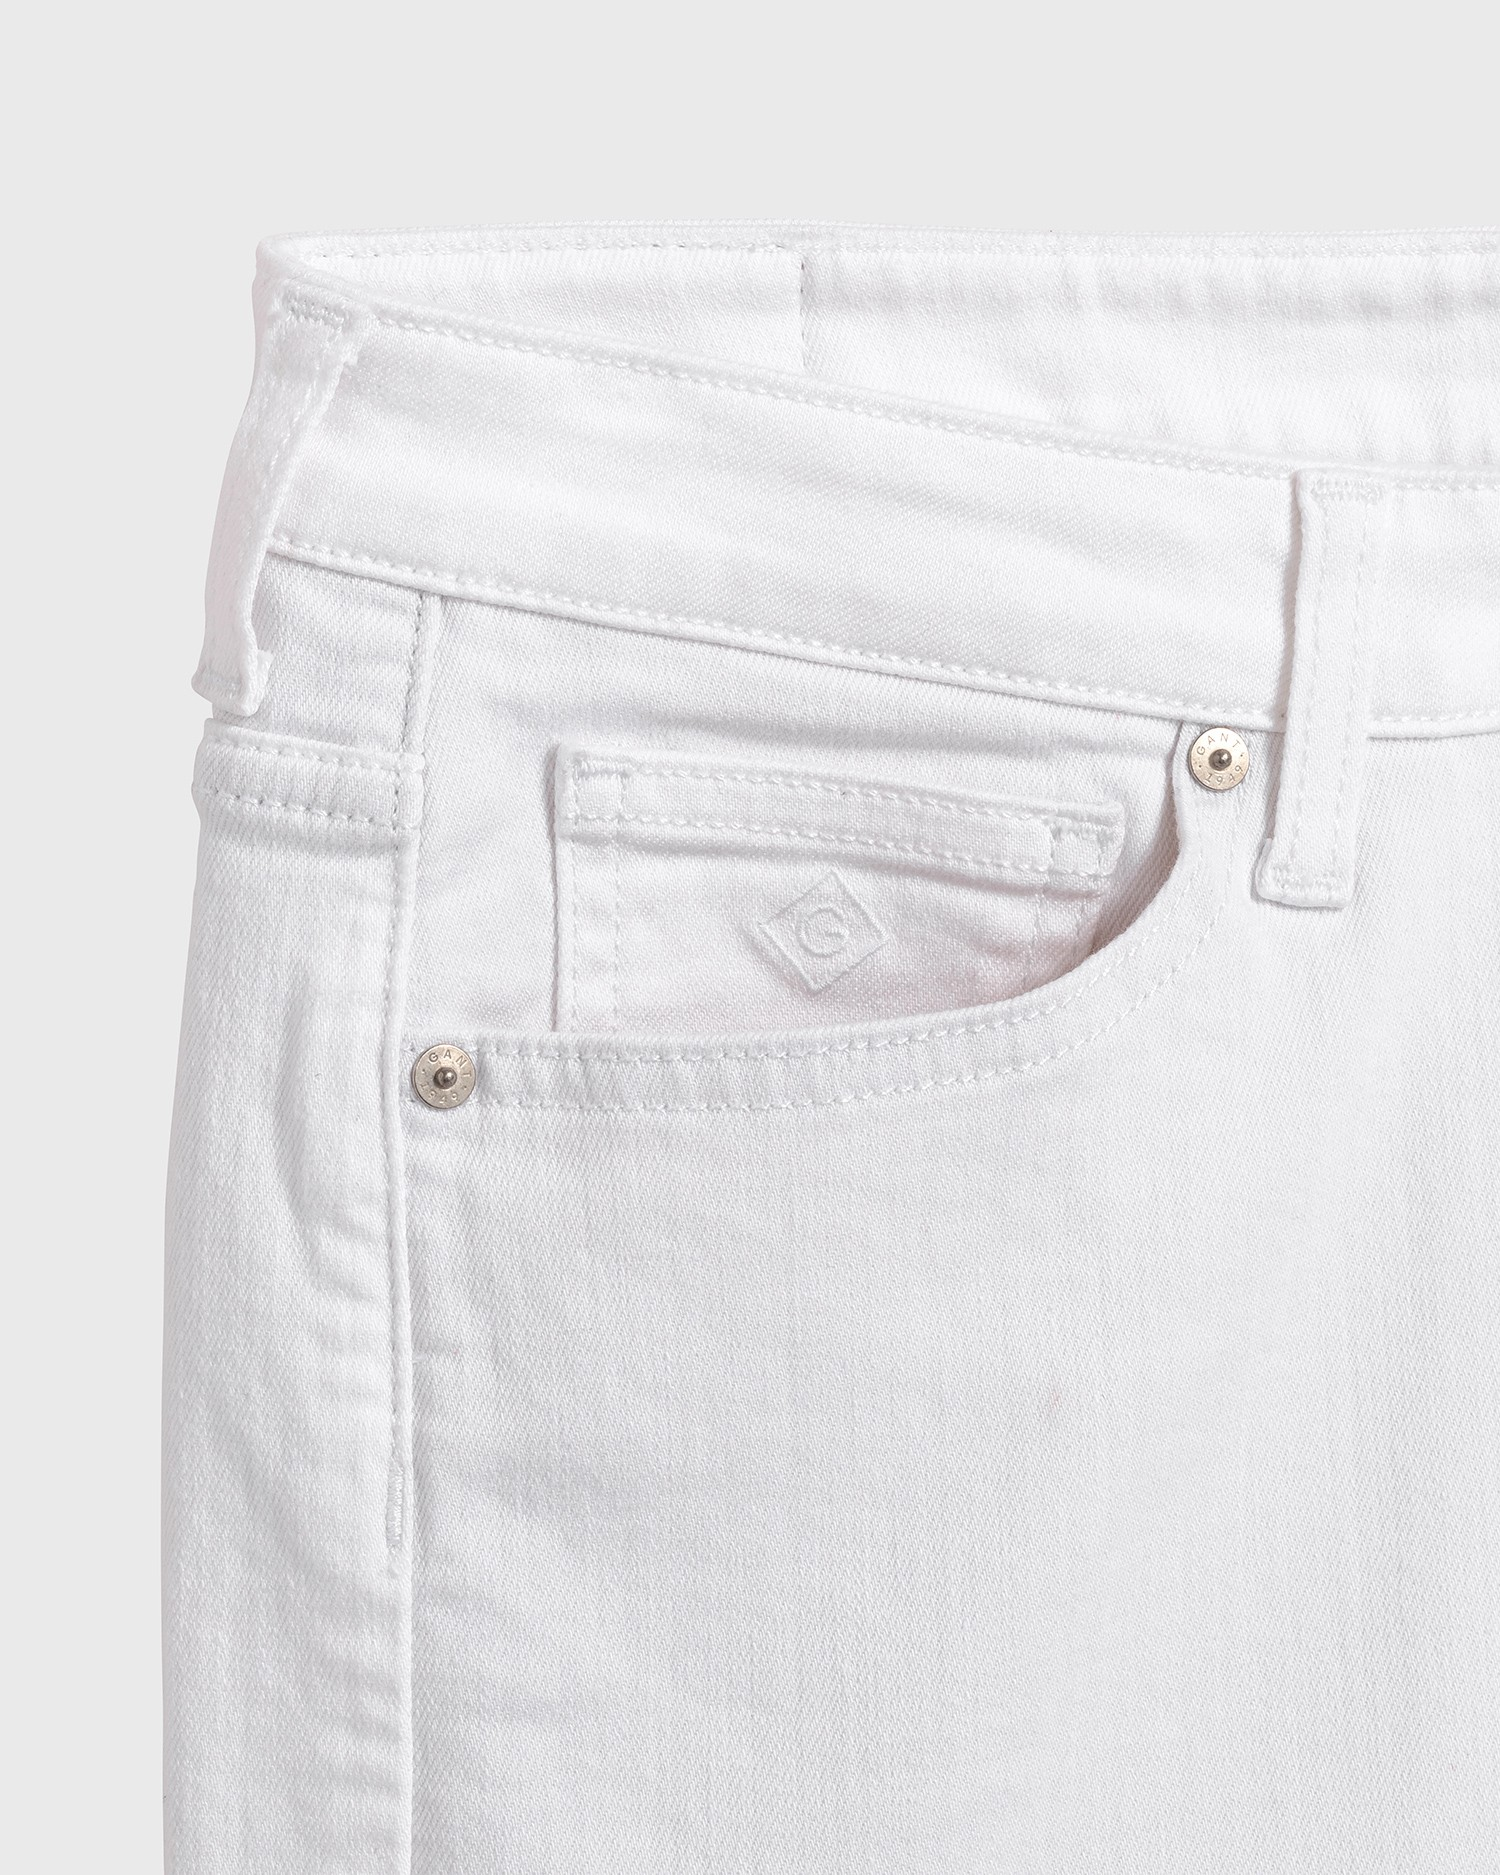 GANT Women's Denim Shorts - 4020008